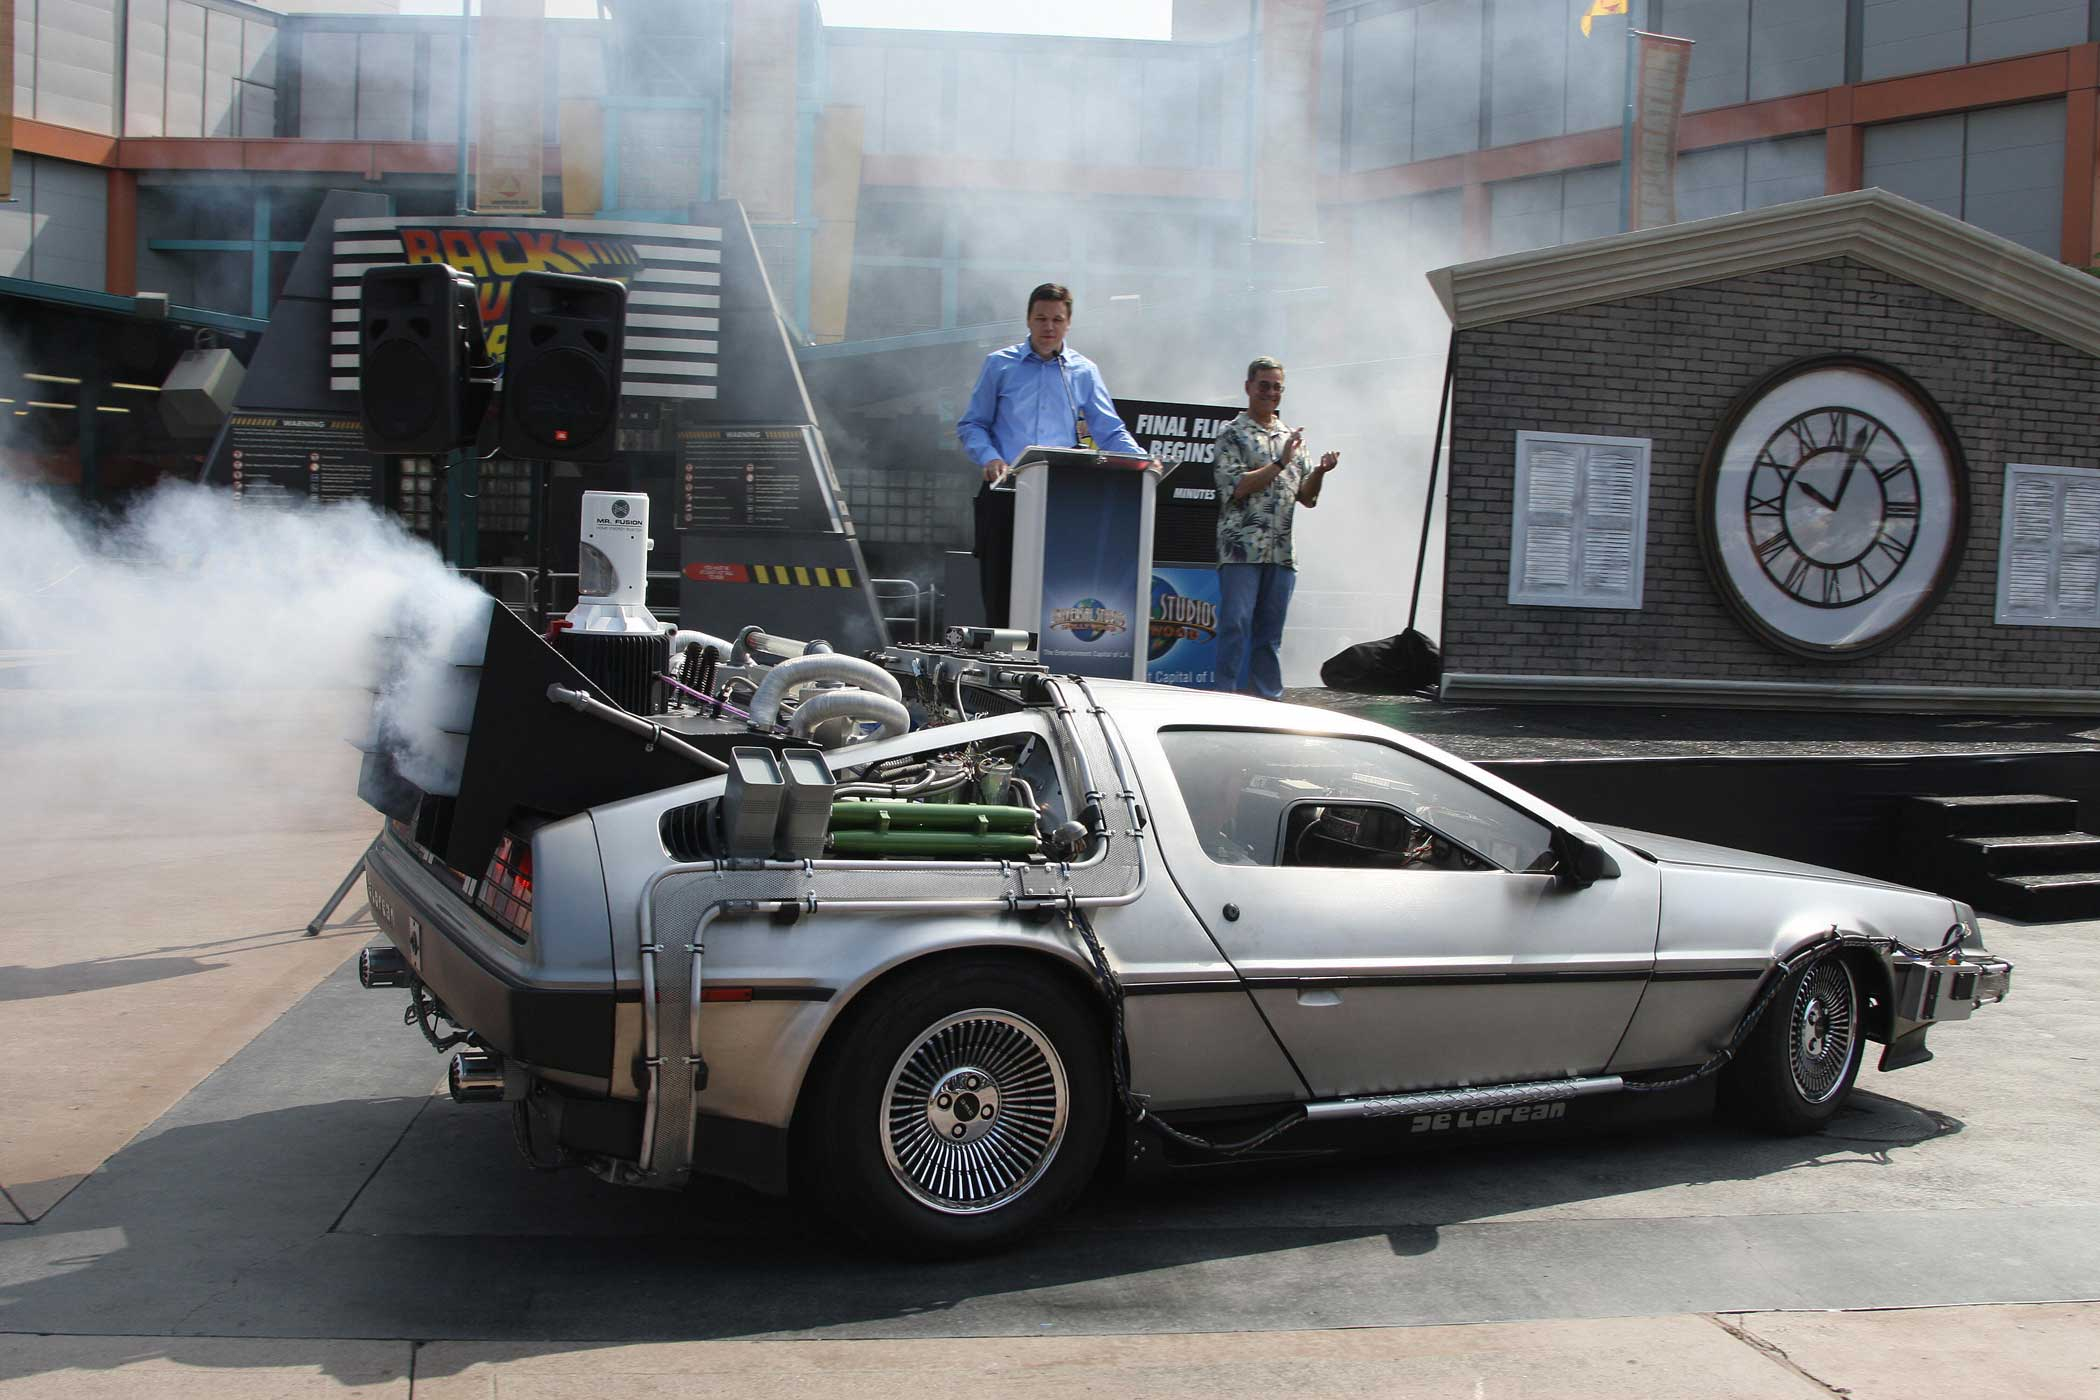 """Actor Christopher Lloyd (in passenger seat) arrives in a DeLorean car at Universal Studios Hollywood's """"Back to the Future - The Ride"""" in University City, California on Aug. 7, 2007.  Lloyd, who portrayed Doc Brown in the 1985 film """"Back to the Future,"""" made the appearence to mark a month-long countdown to the closure of the 14-year-old ride."""